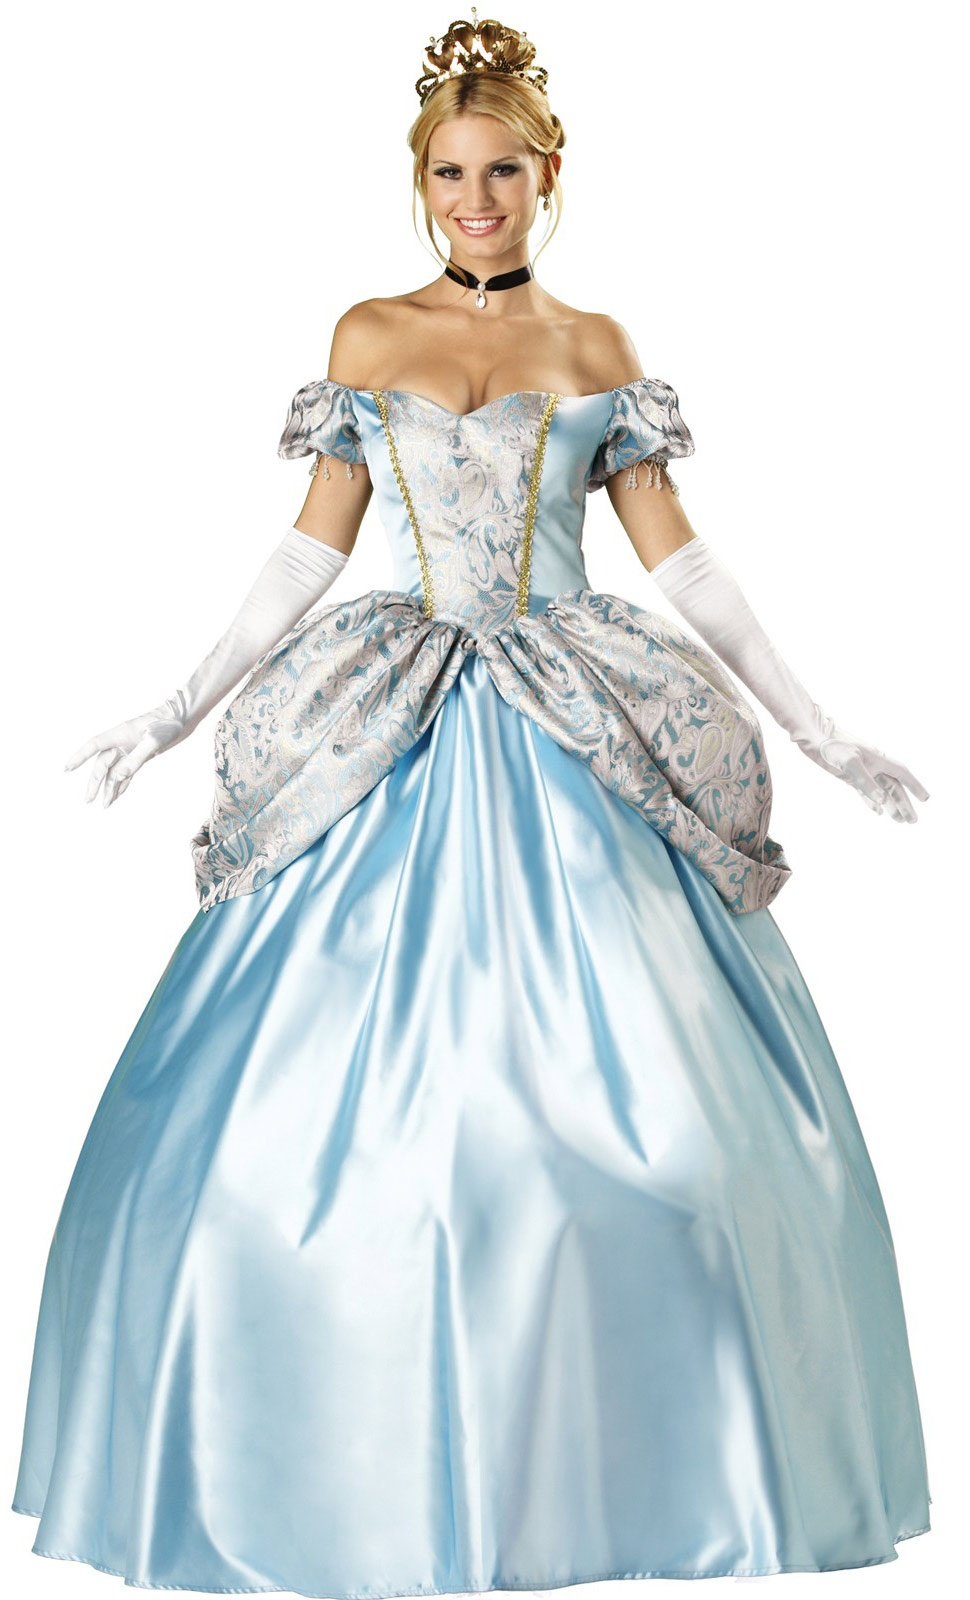 Enchanting Princess Adult Costume